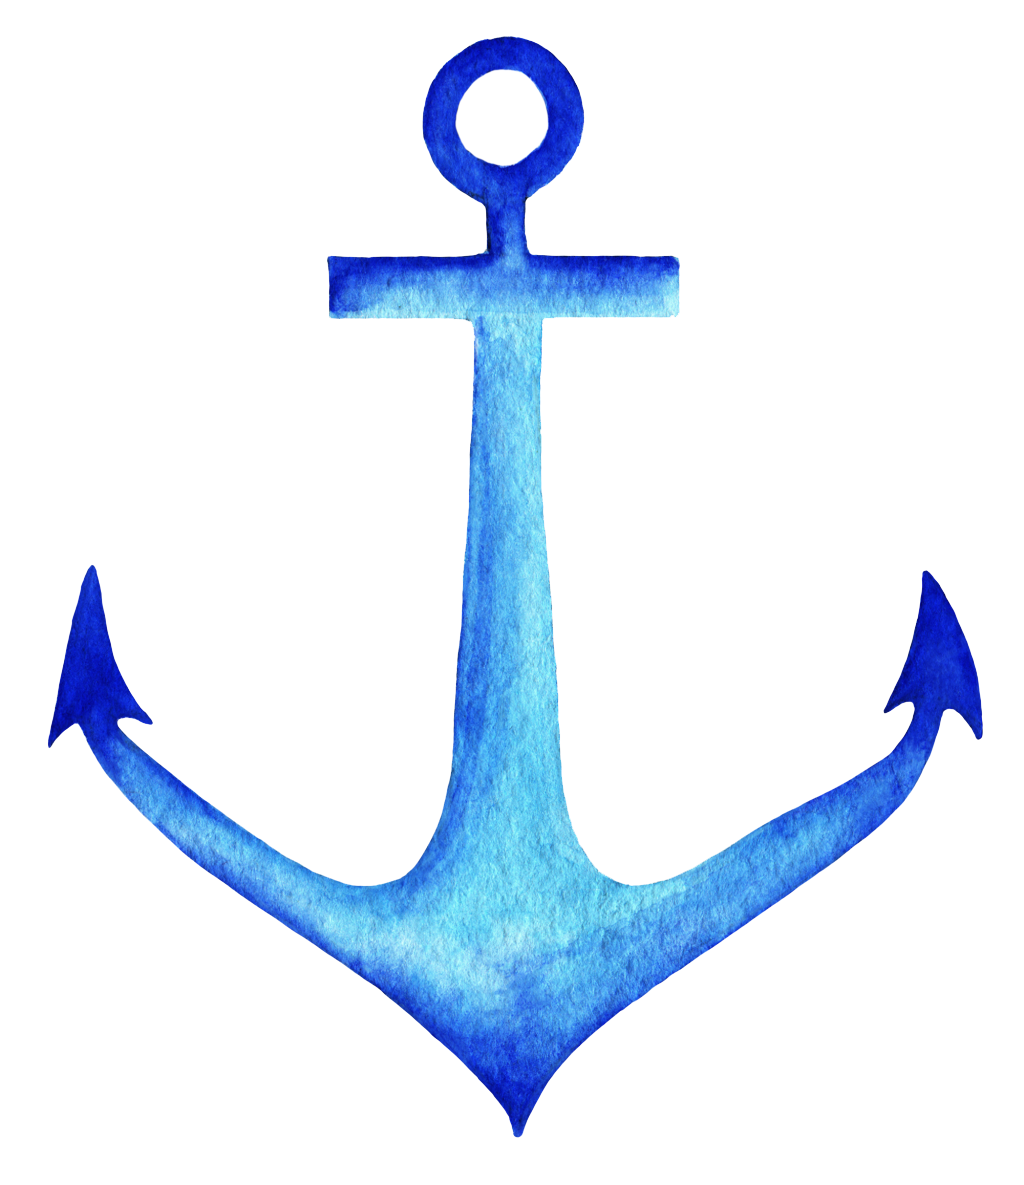 Ink transprent png free. Clipart anchor blue anchor